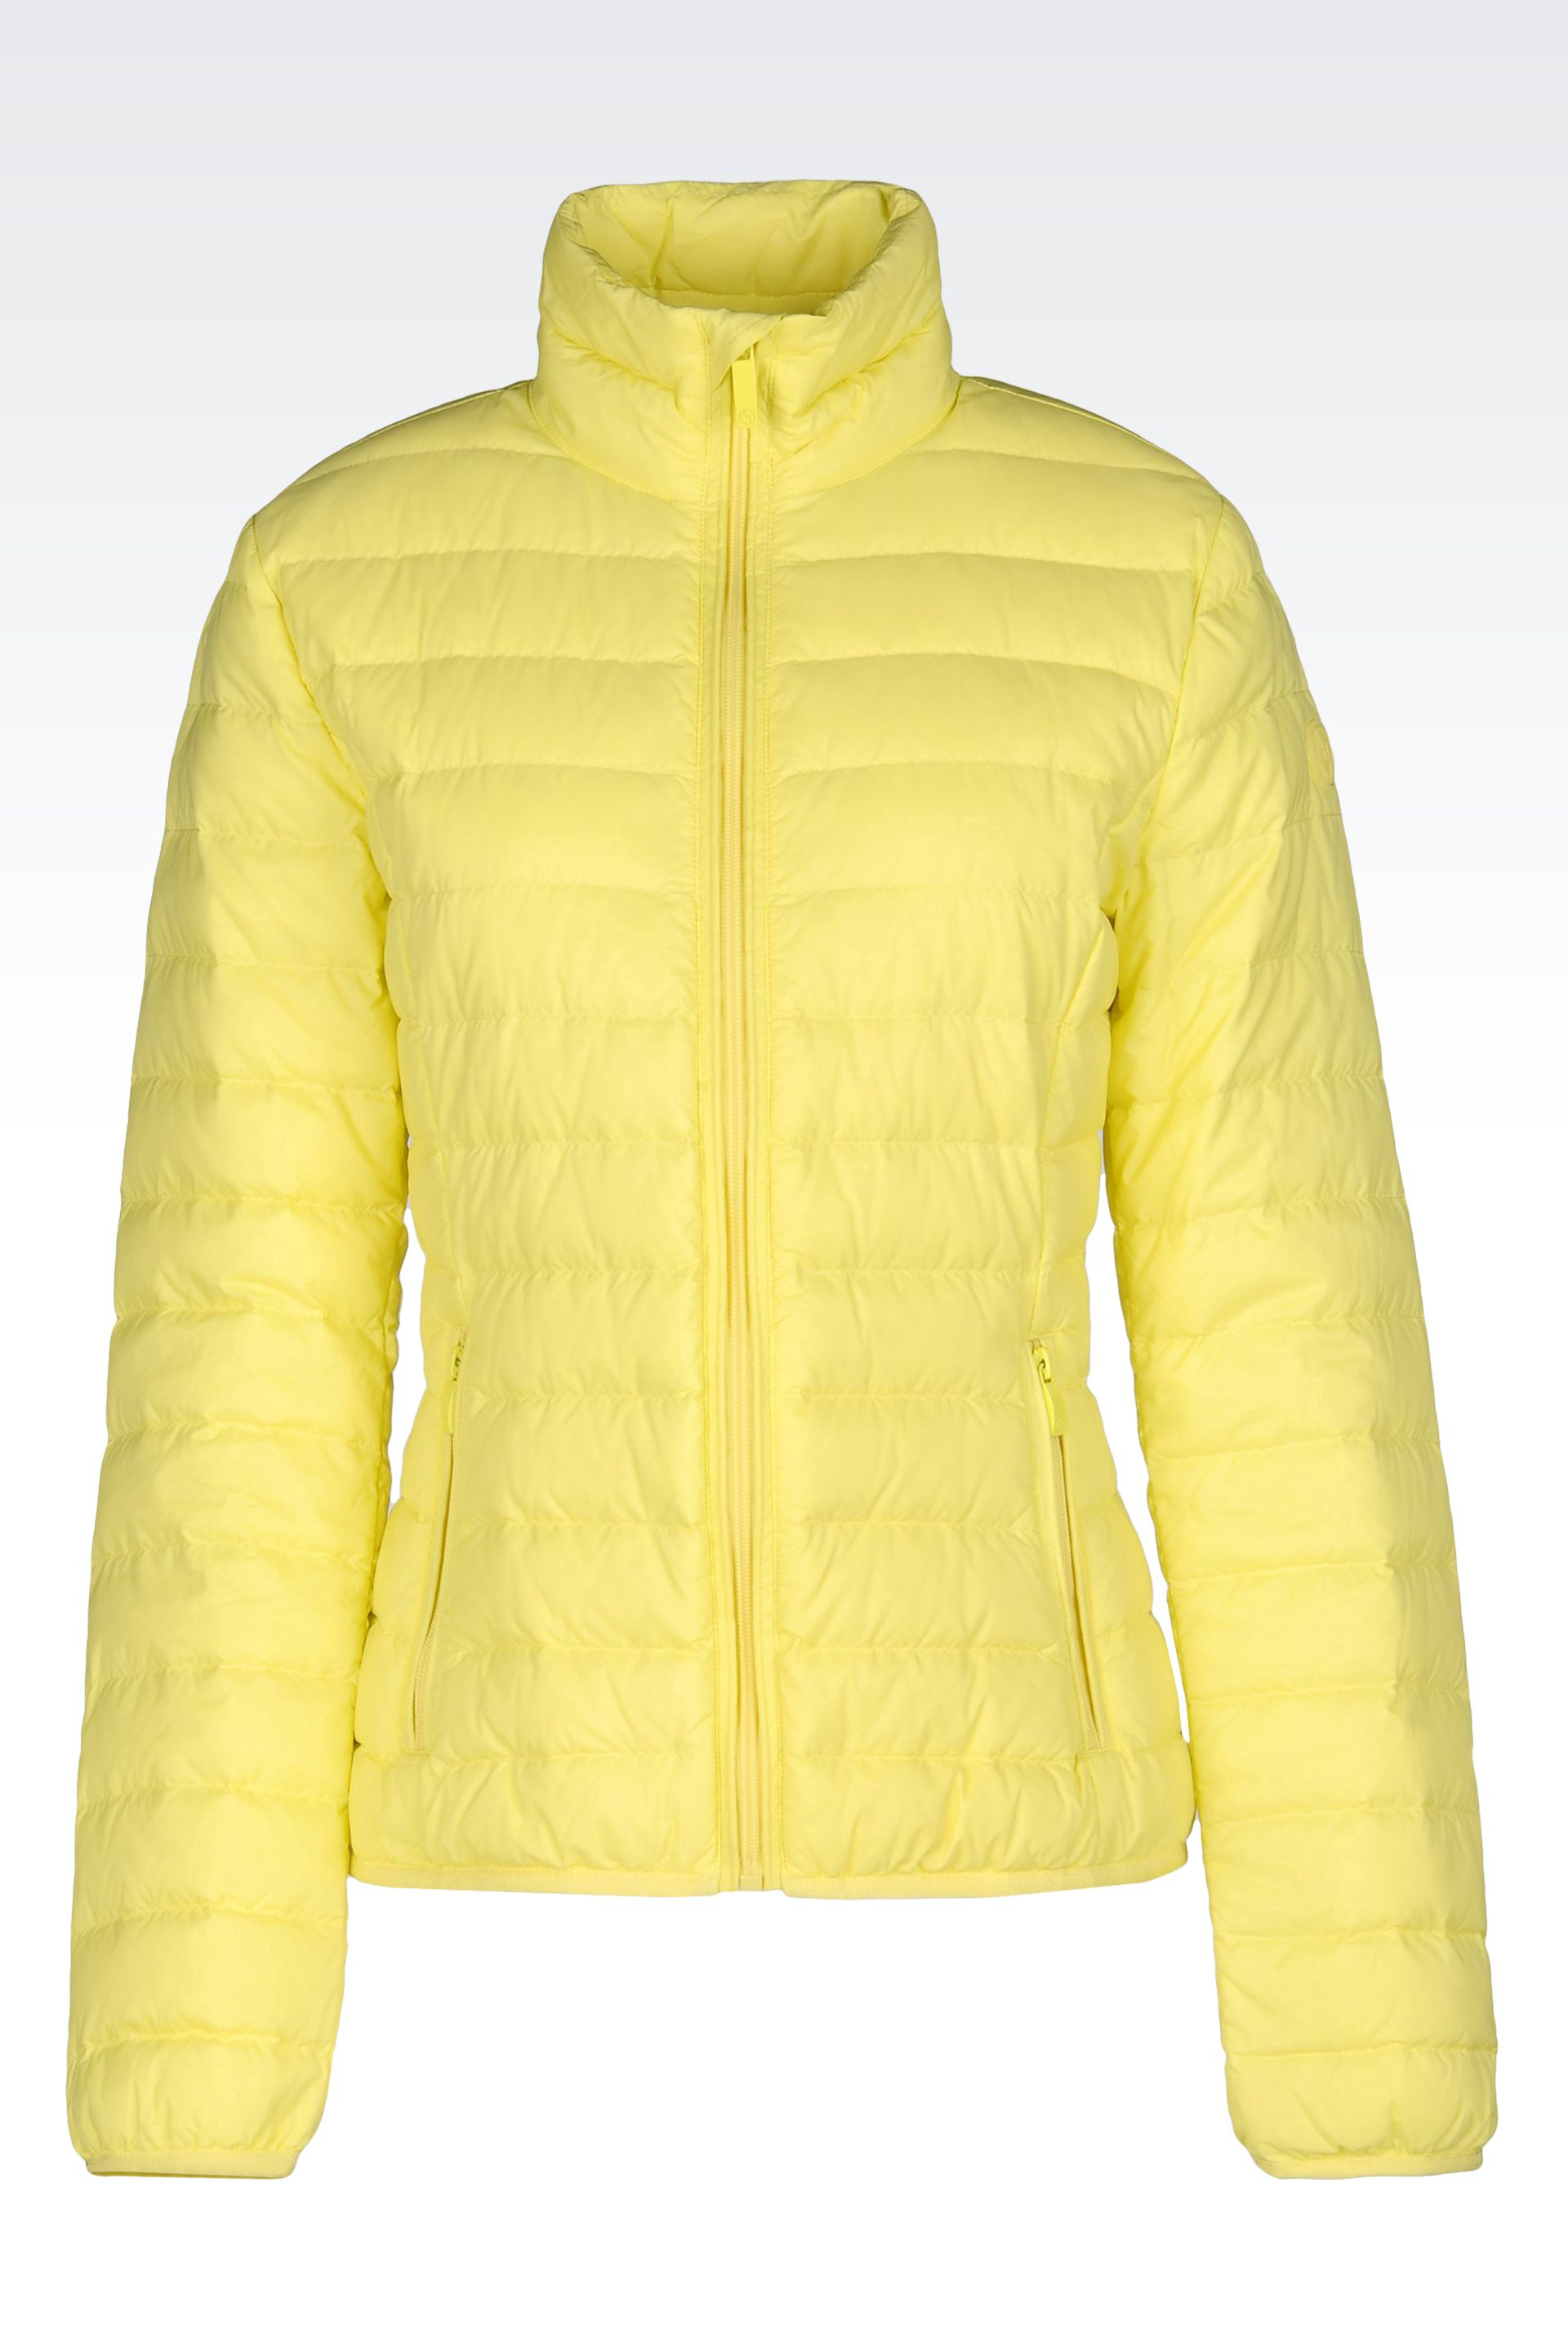 Armani Jeans Ultra Light Down Jacket With Special